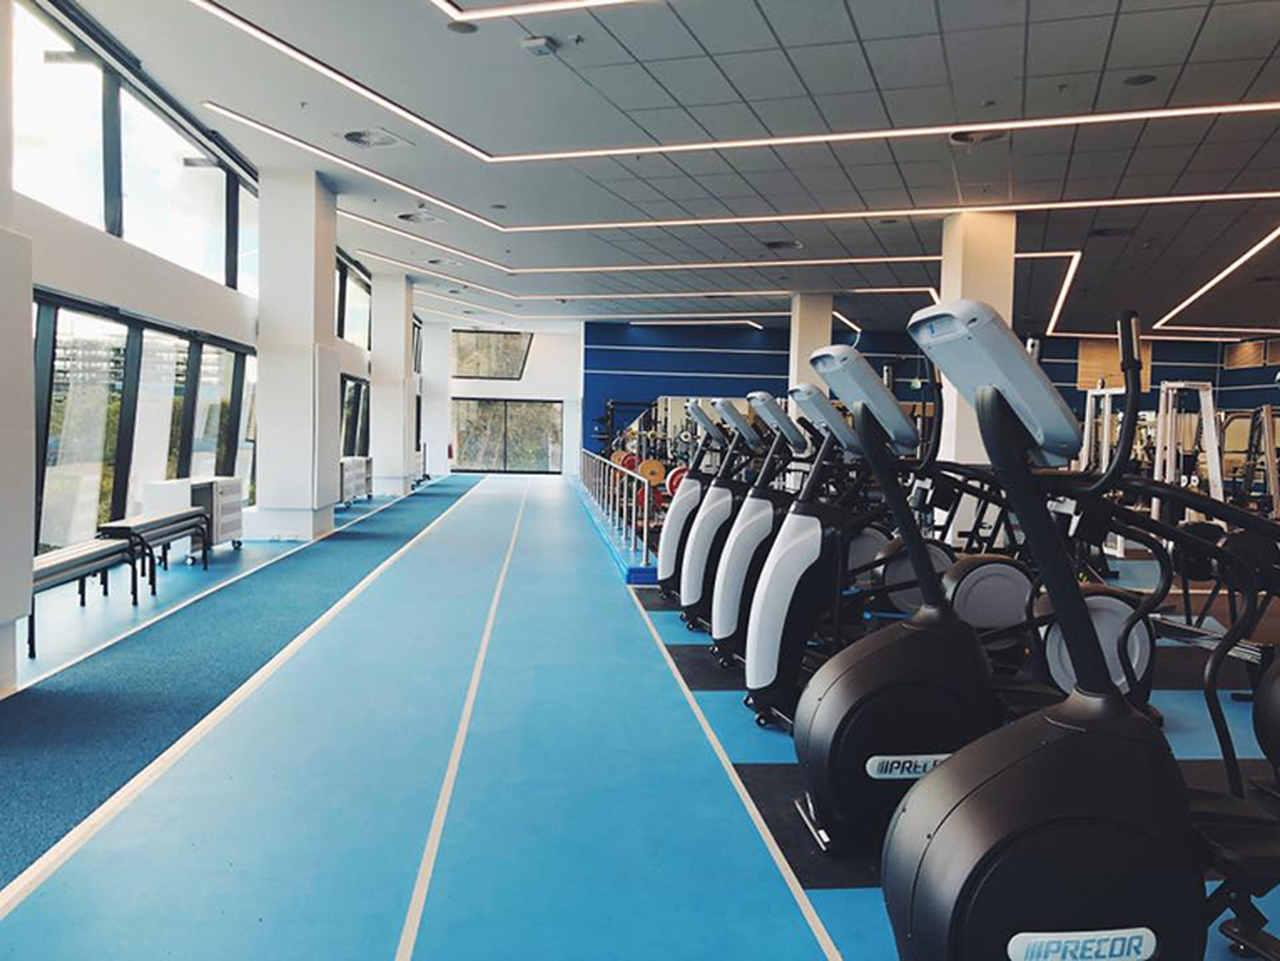 Leisure centre, Gym, Room, Physical fitness, Building, Sport venue, Fitness Centre